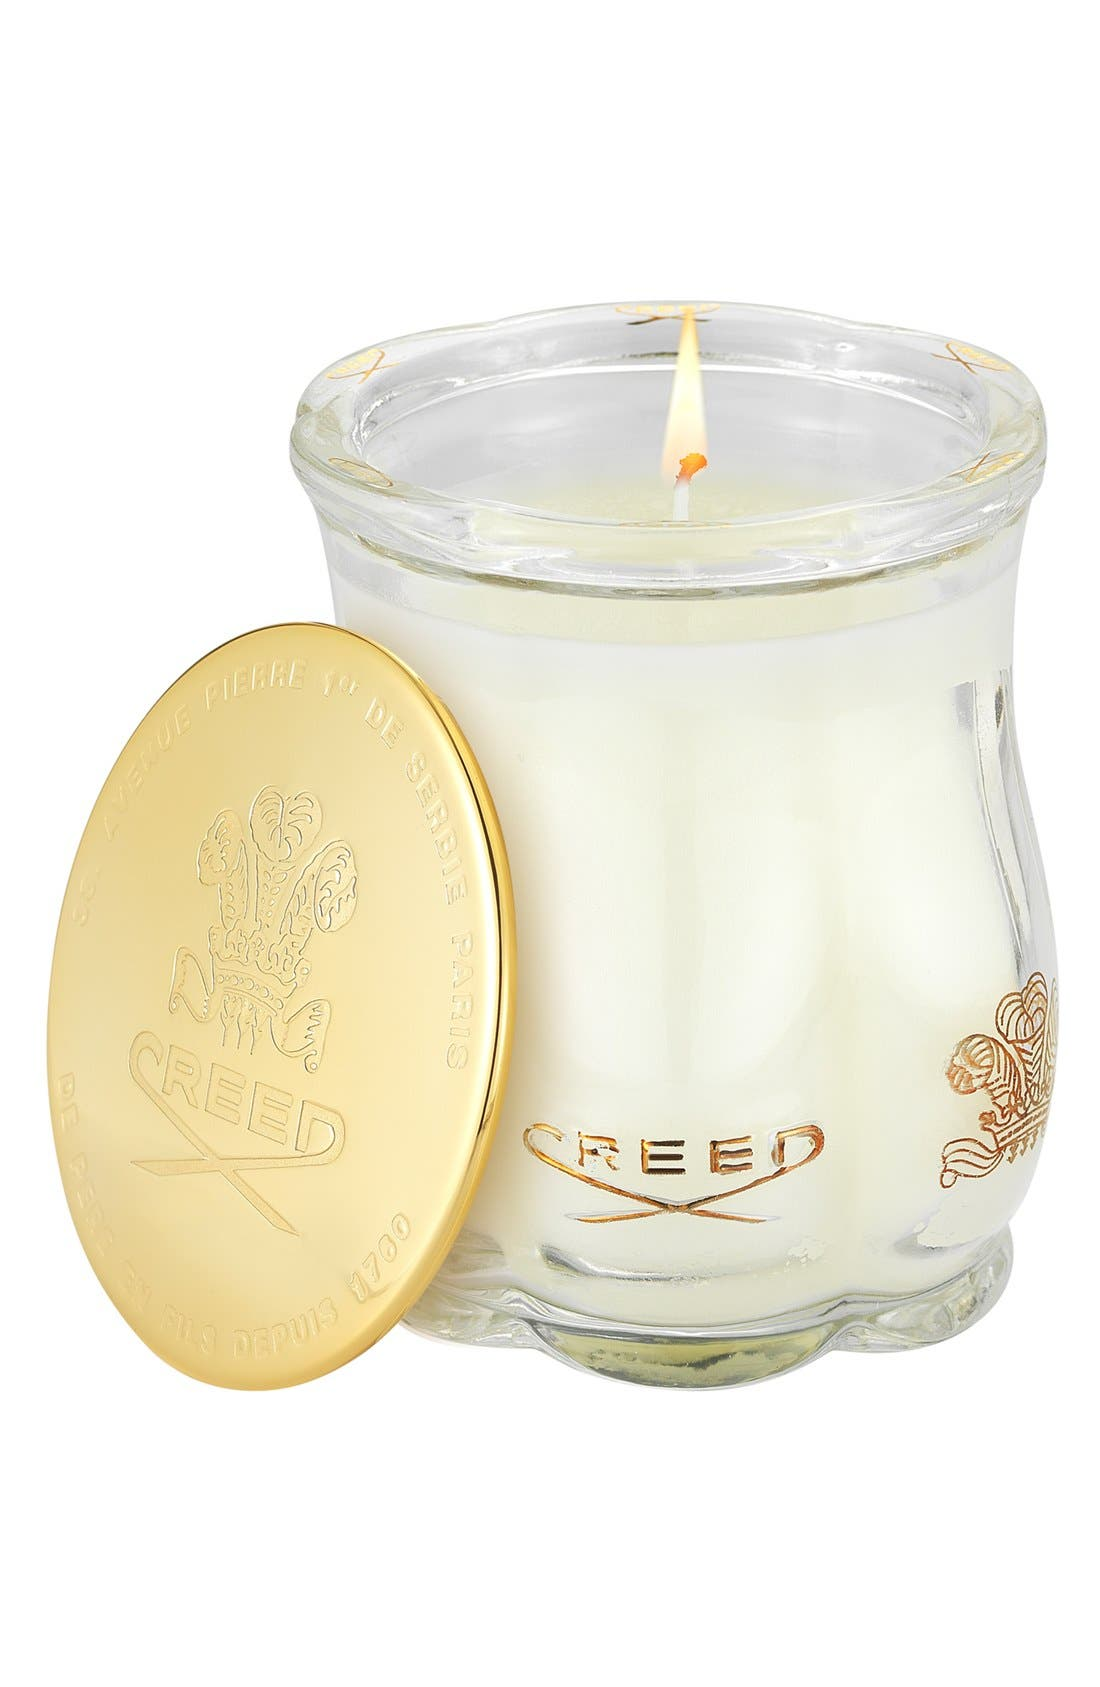 Main Image - Creed 'Spring Flower' Candle